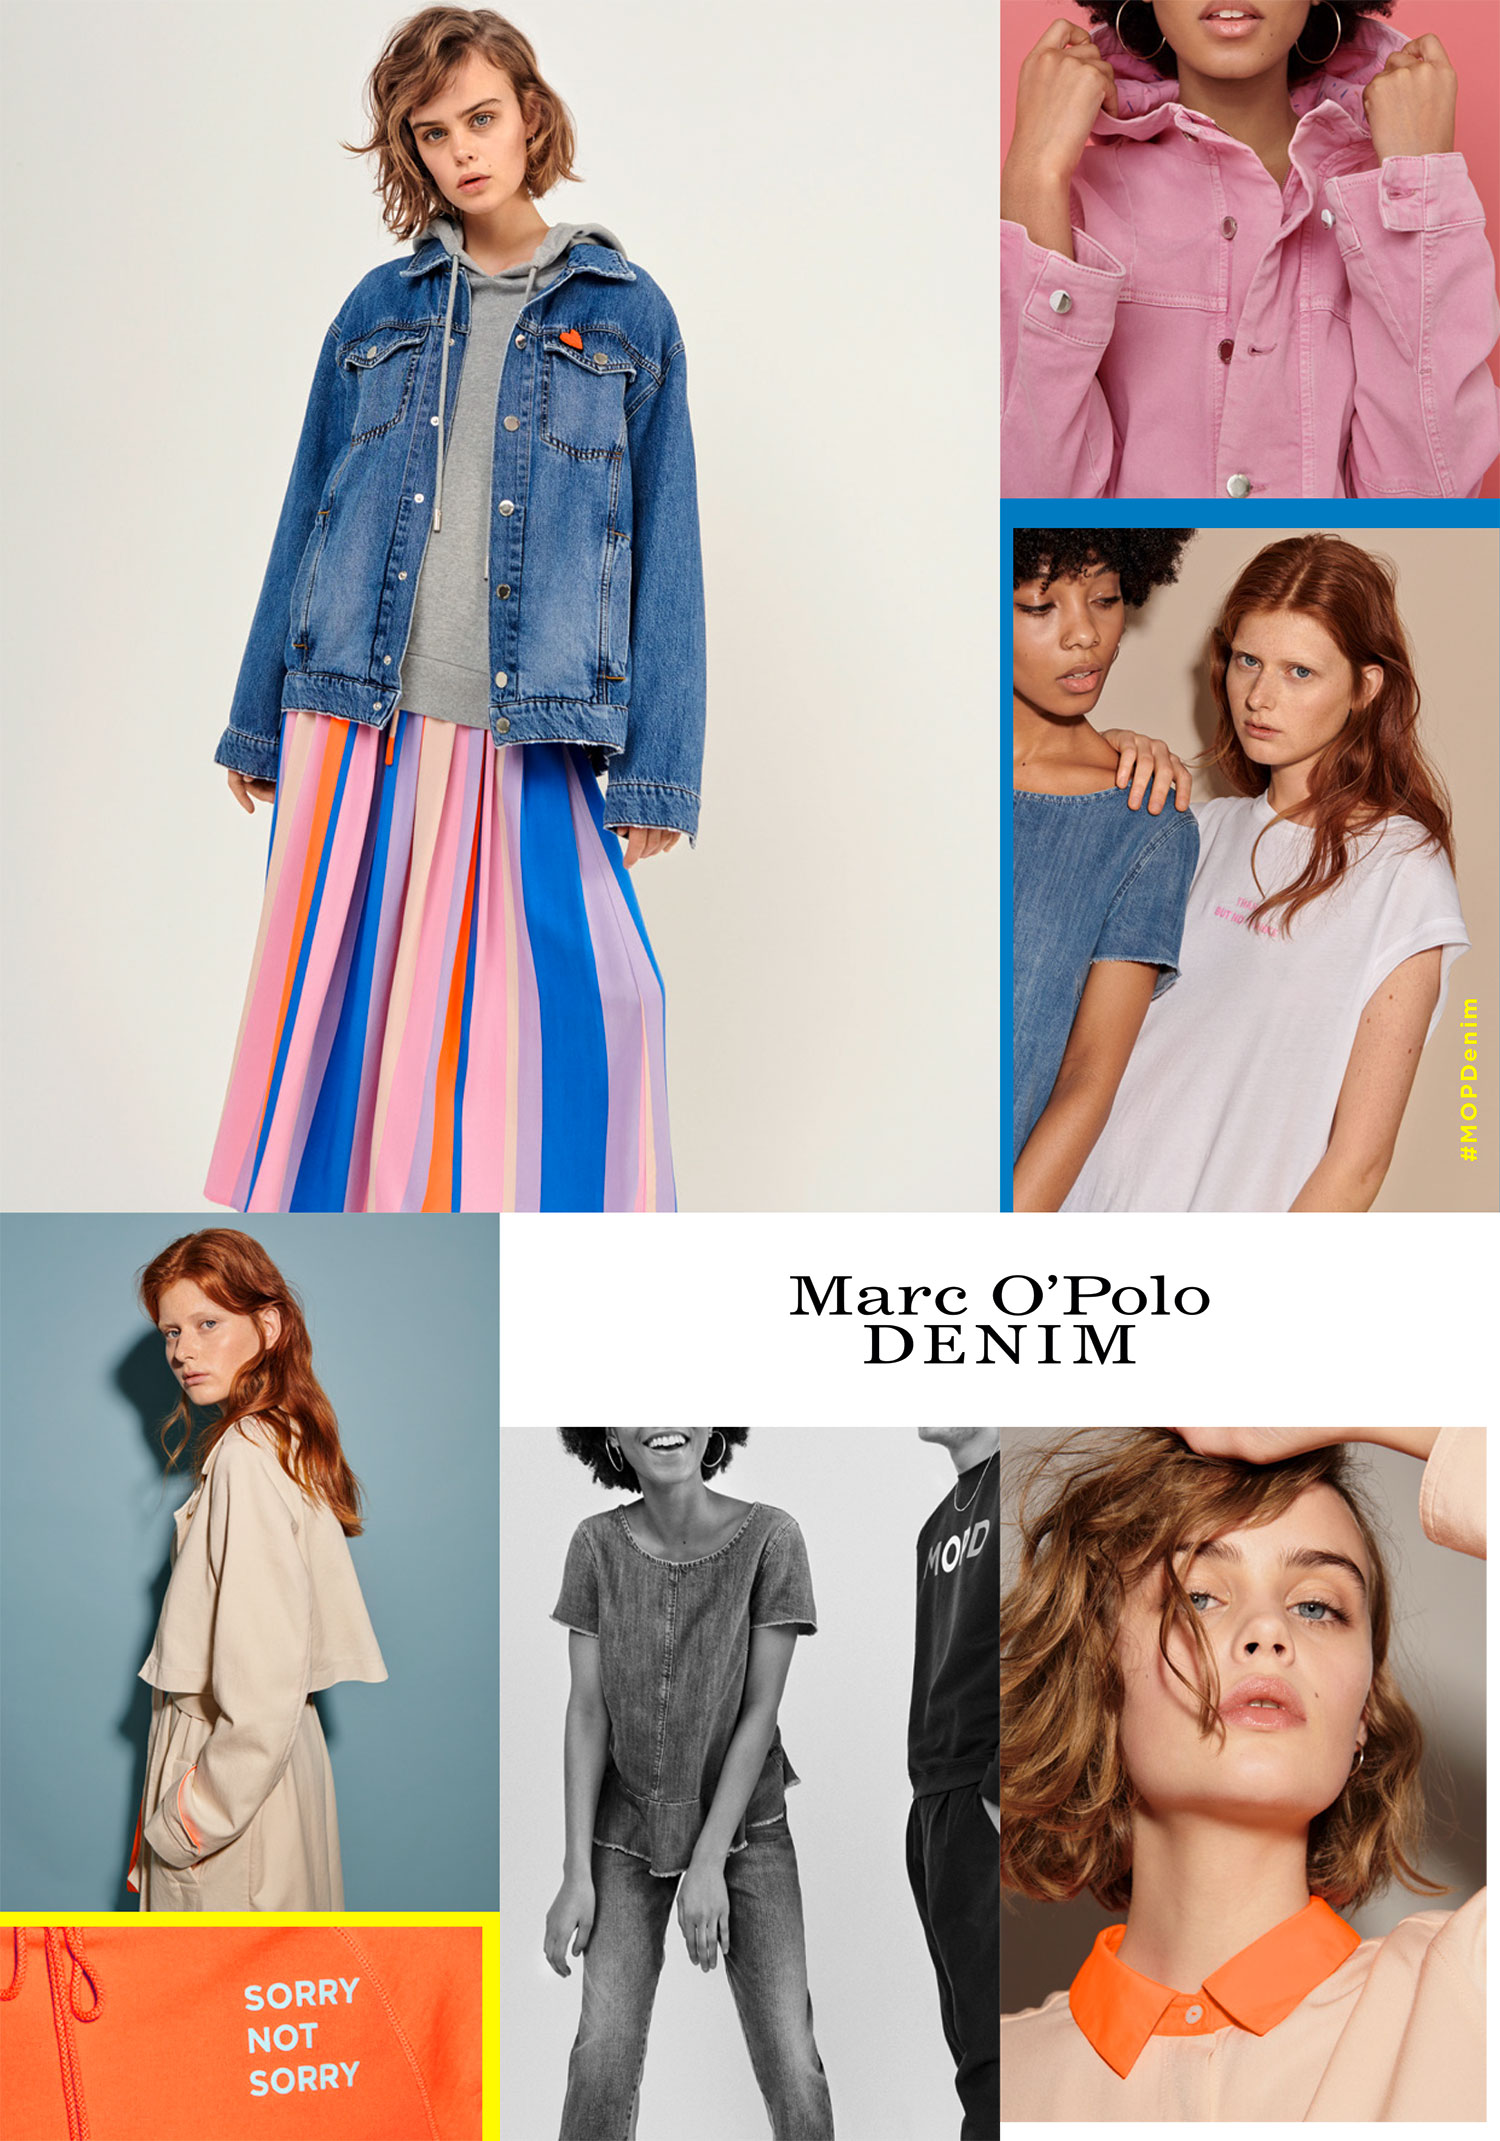 180108_SS18_MOPD_campaign_collage.pdf-(dragged)-1.jpg